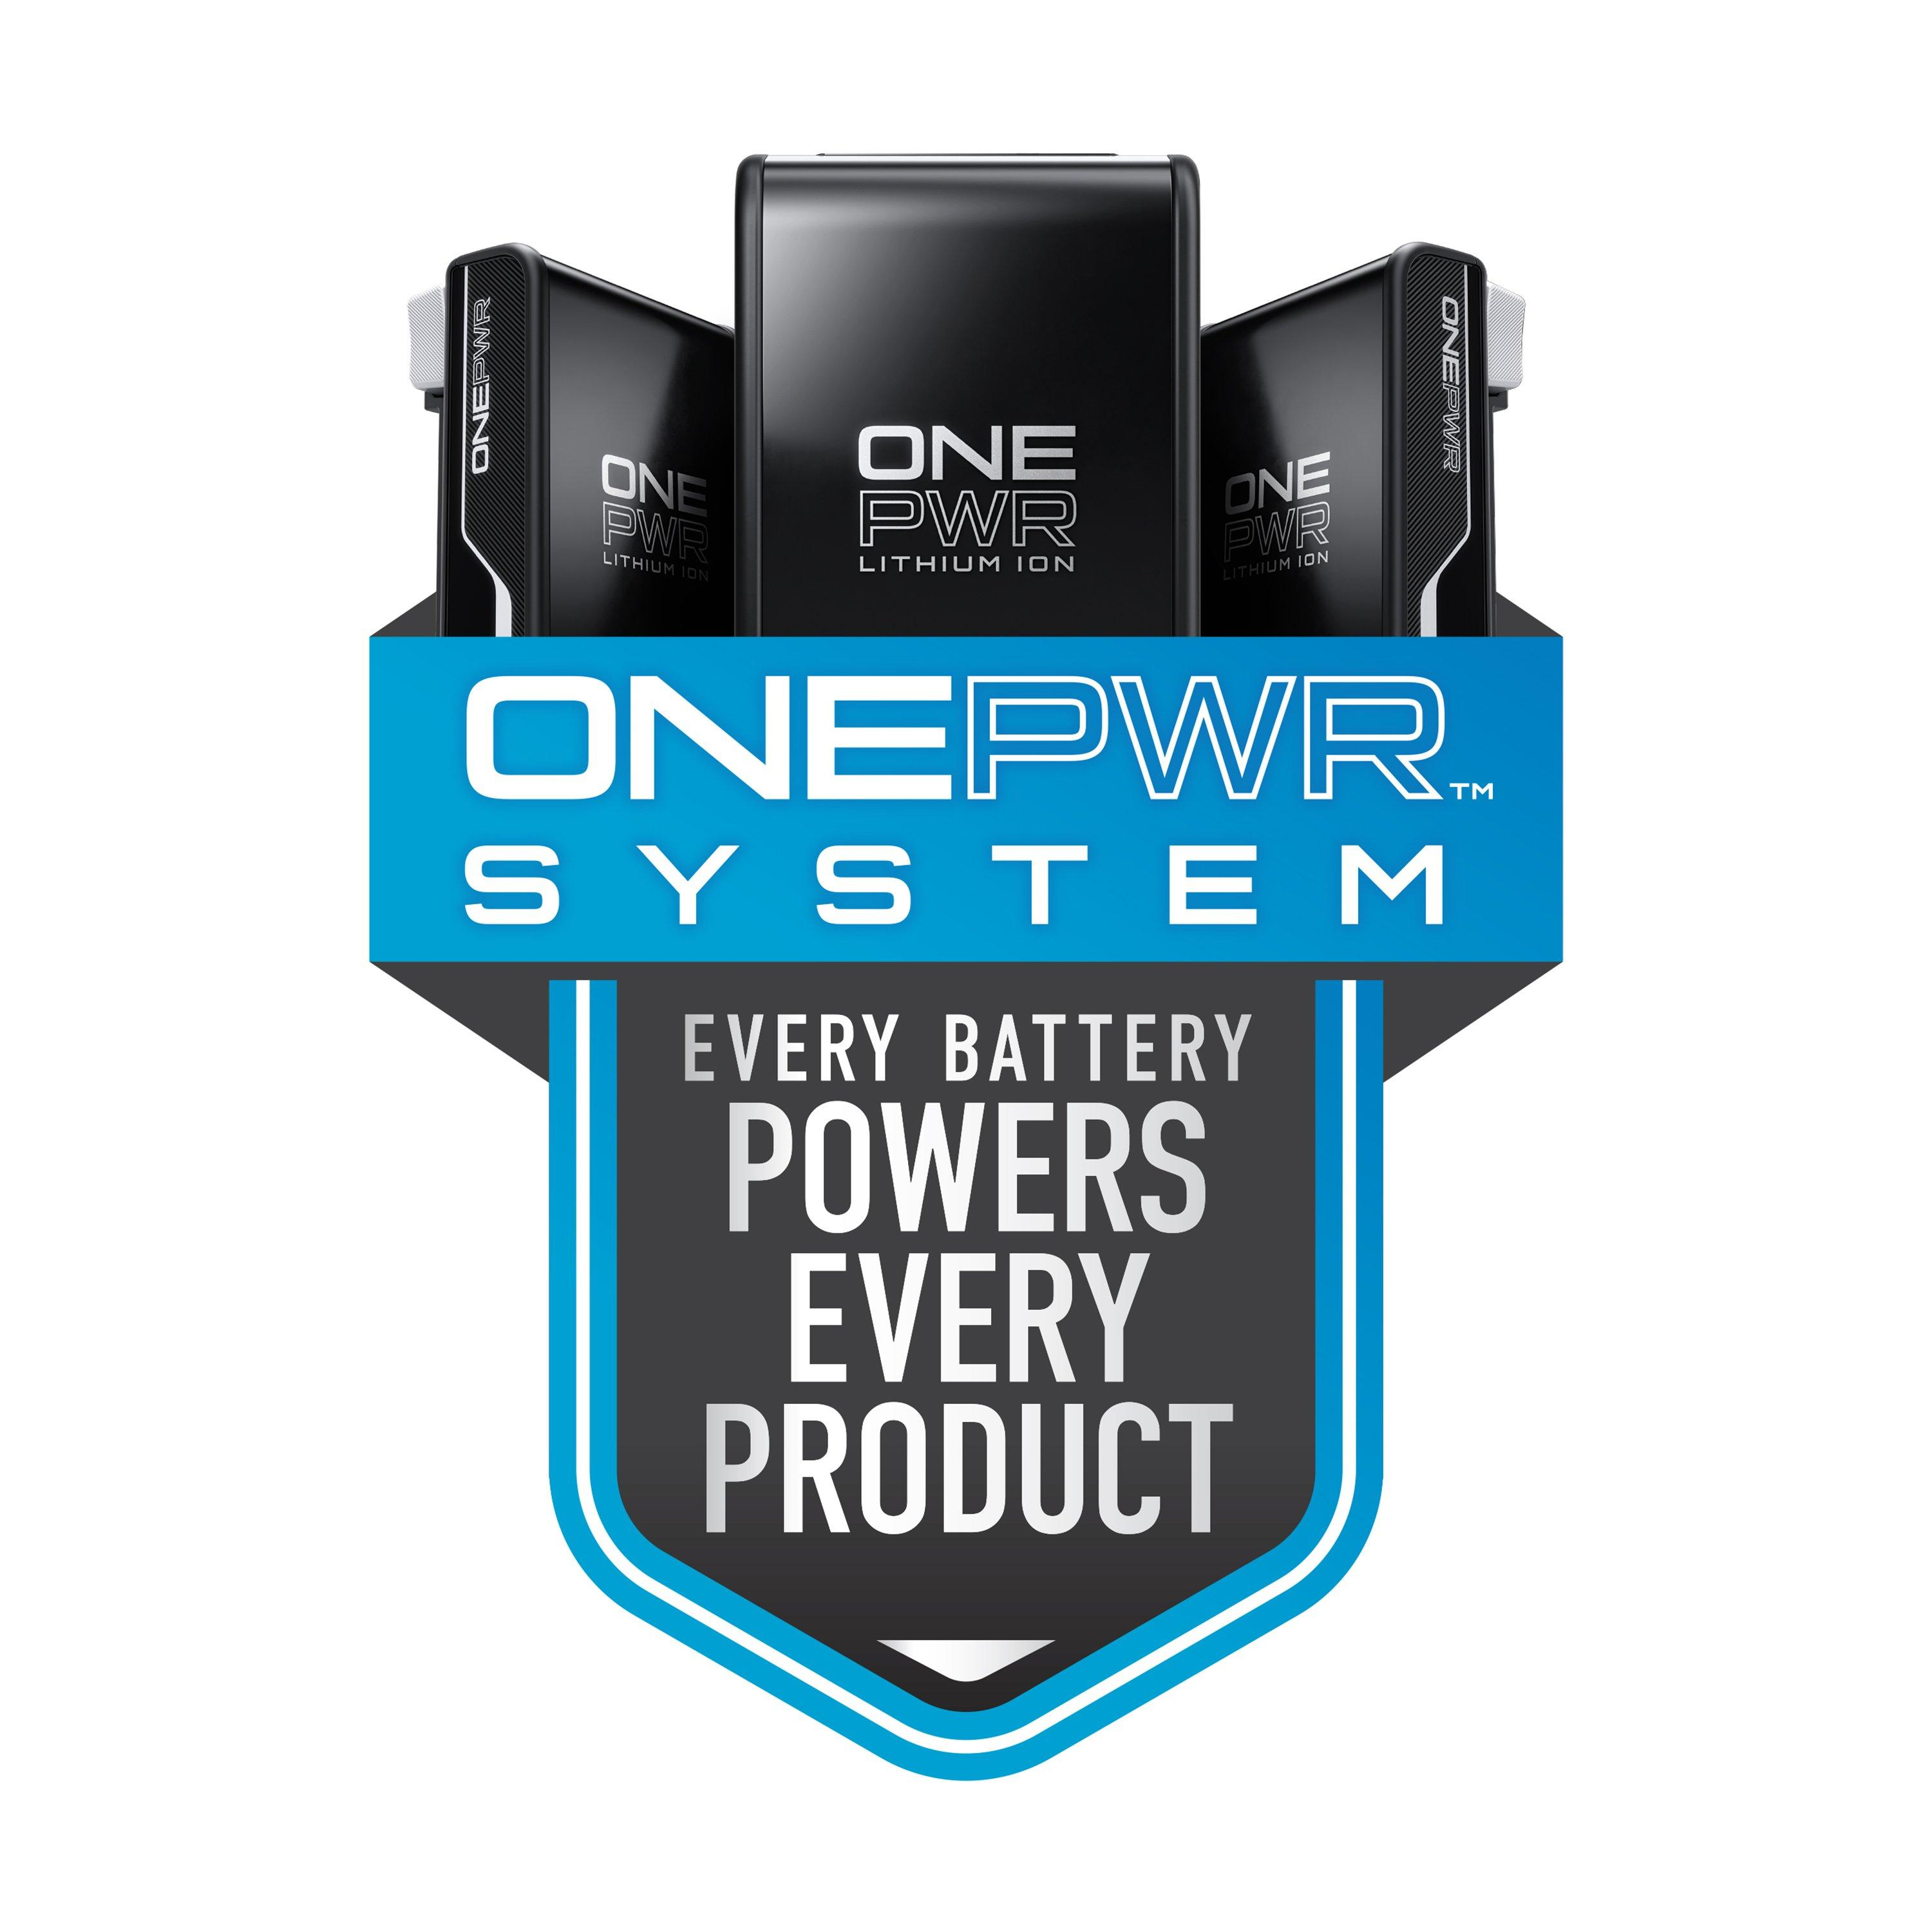 ONEPWR Dual Bay Battery Charger7